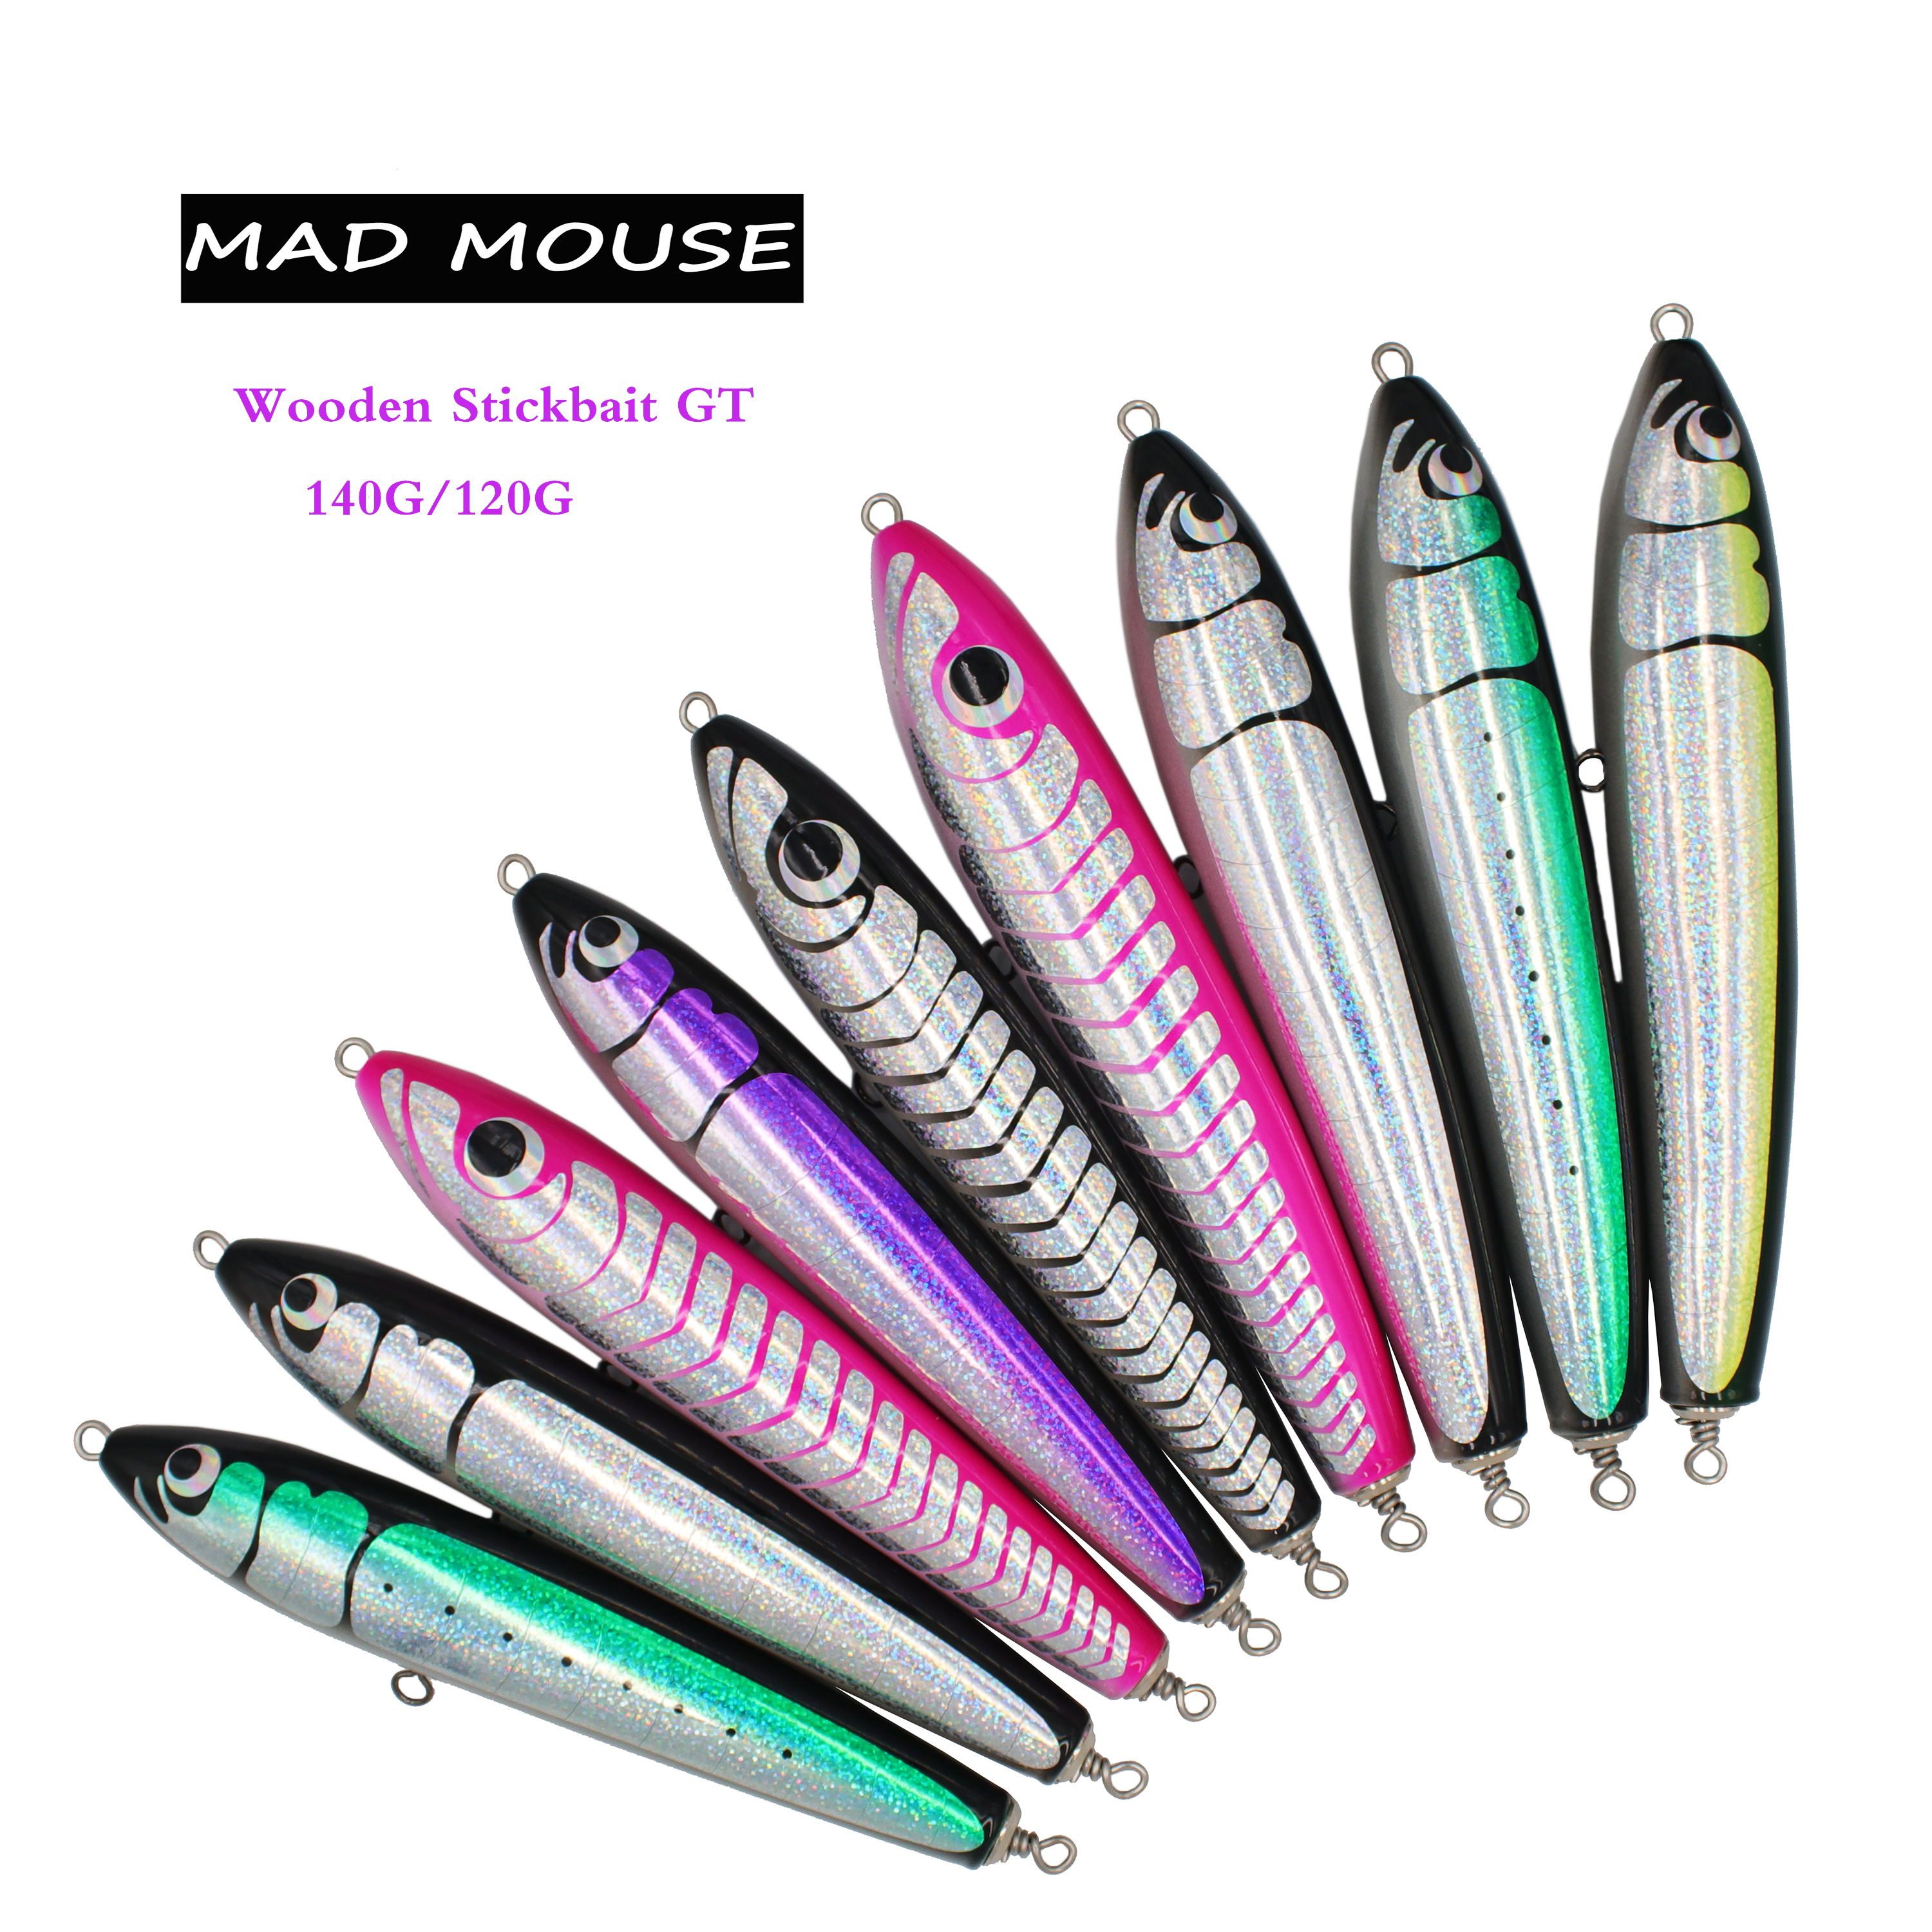 NEW MAD MOUSE Topwater Wooden Stickbait GT Surface Trolling Lure 140G/120G Deep Sea Pencil Boat Fishing Artificial Bait Ocean